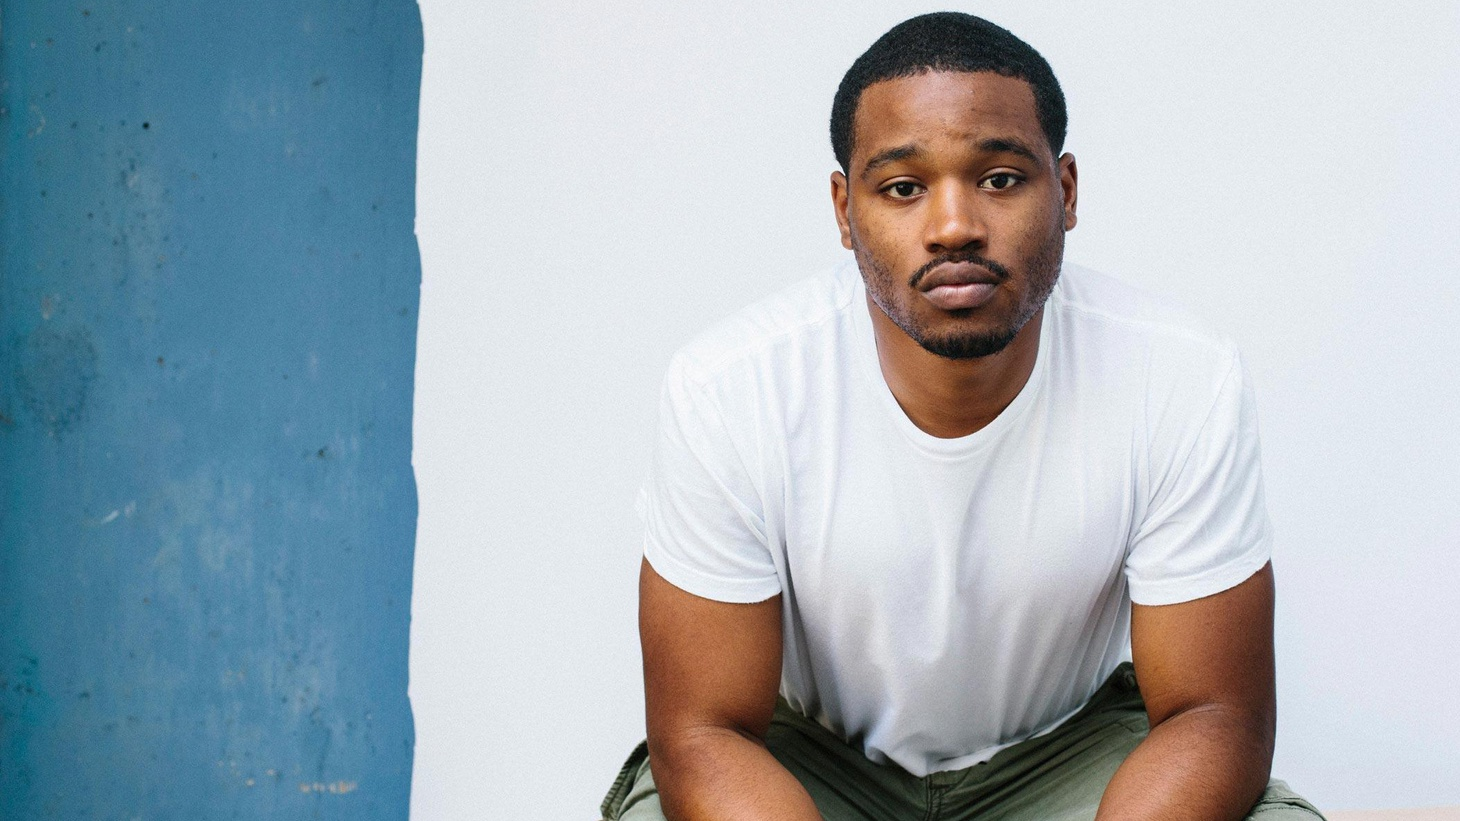 On New Years Day 2009, Oscar Grant was fatally shot by a transit officer at the Fruitvale BART station. Four years later, first-time director Ryan Coogler tells his story.